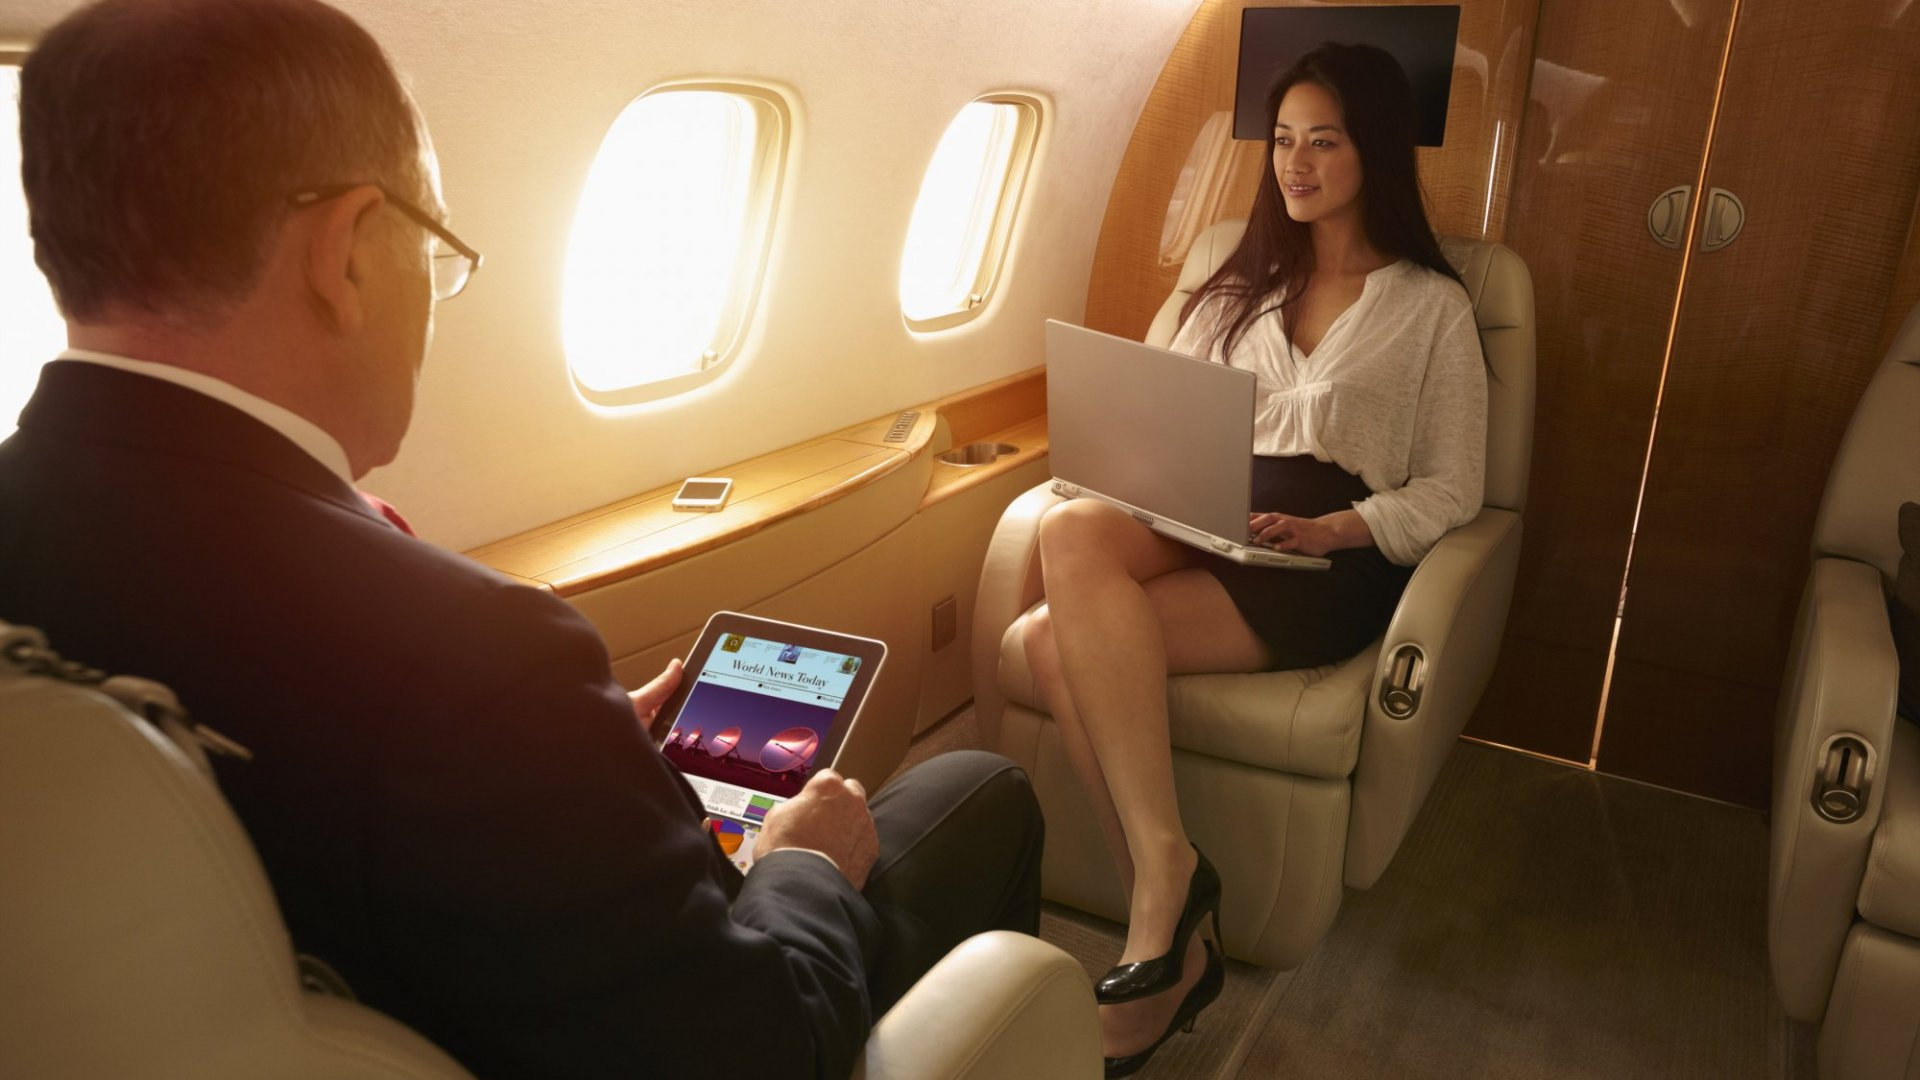 How to Get Around the Laptop and Tablet Ban on Planes